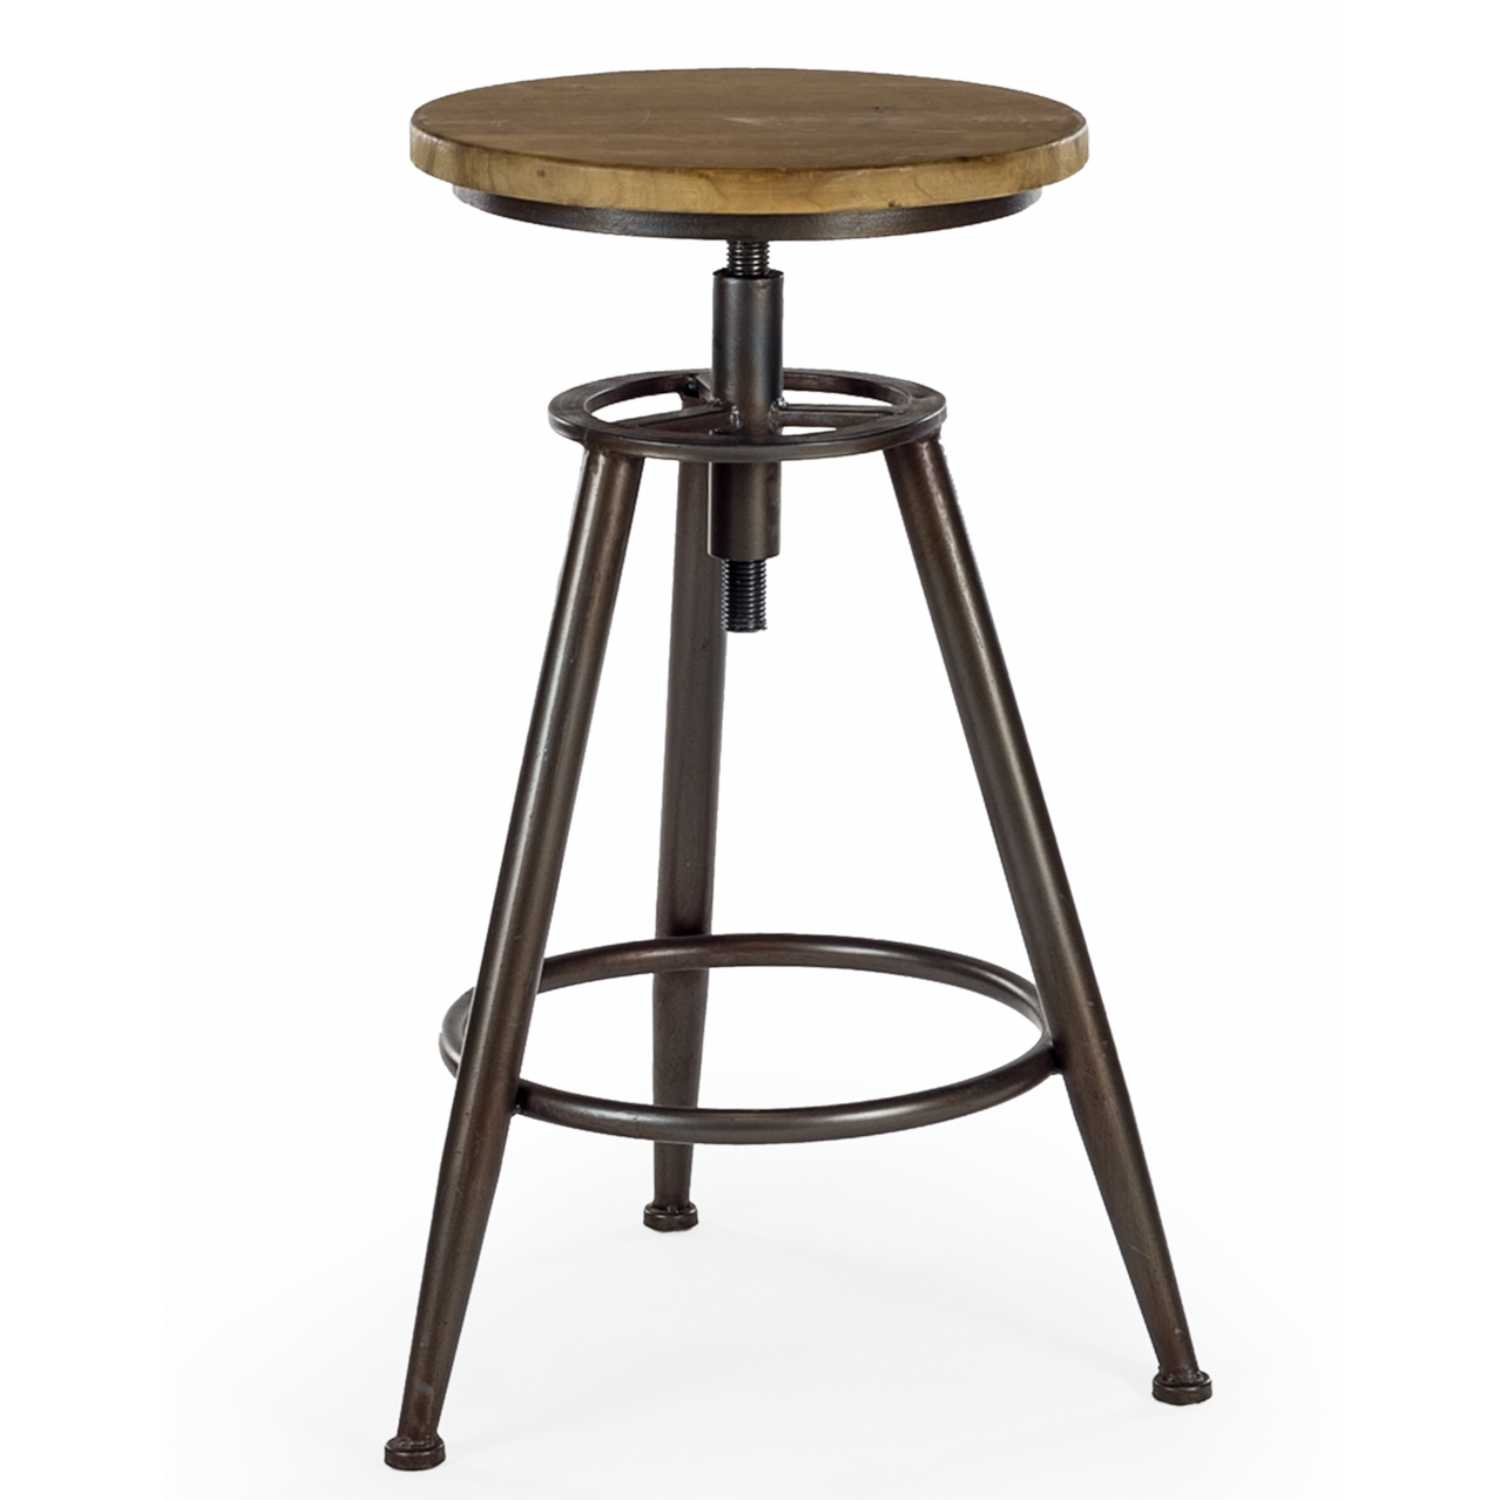 Wood And Metal Bar Stools Pair Of Industrial Wood And Metal Height Adjustable